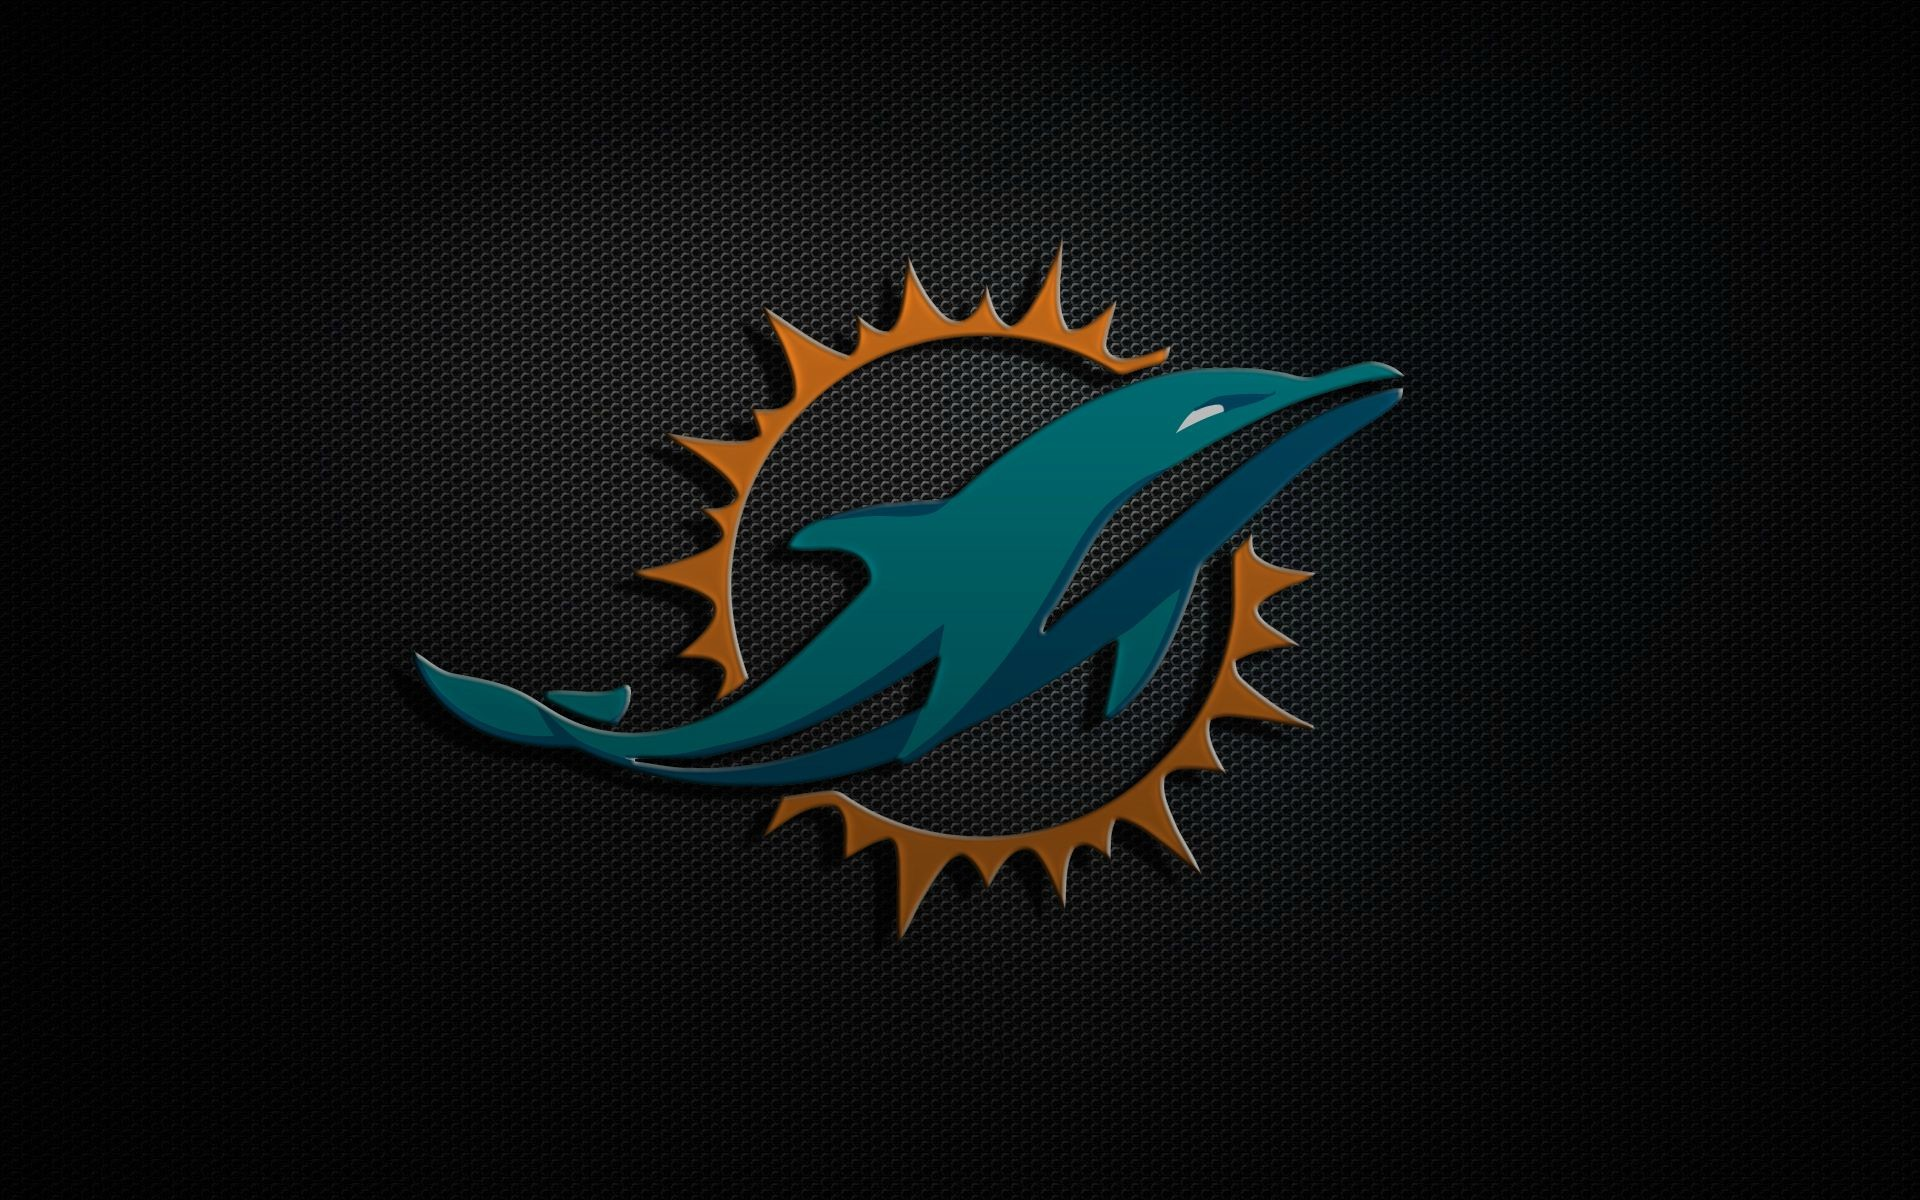 1920x1200 miami dolphins nfl wallpaper share this nfl team wallpaper on facebook